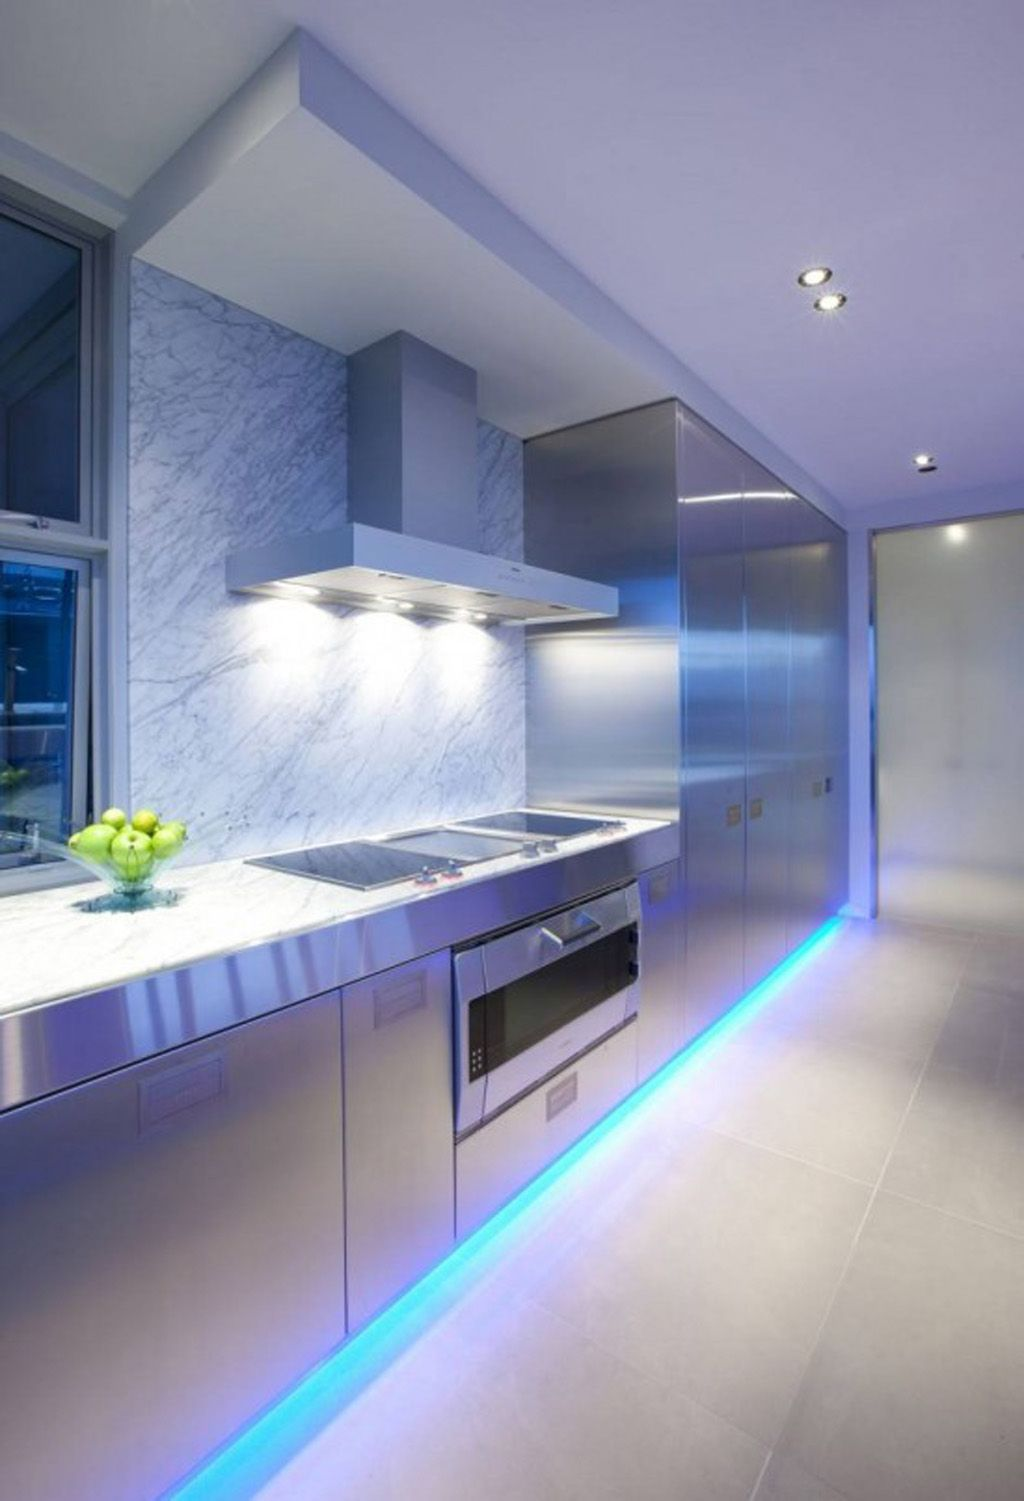 led kitchen lights cheap cabinets for sale ultra modern design with lighting fixtures